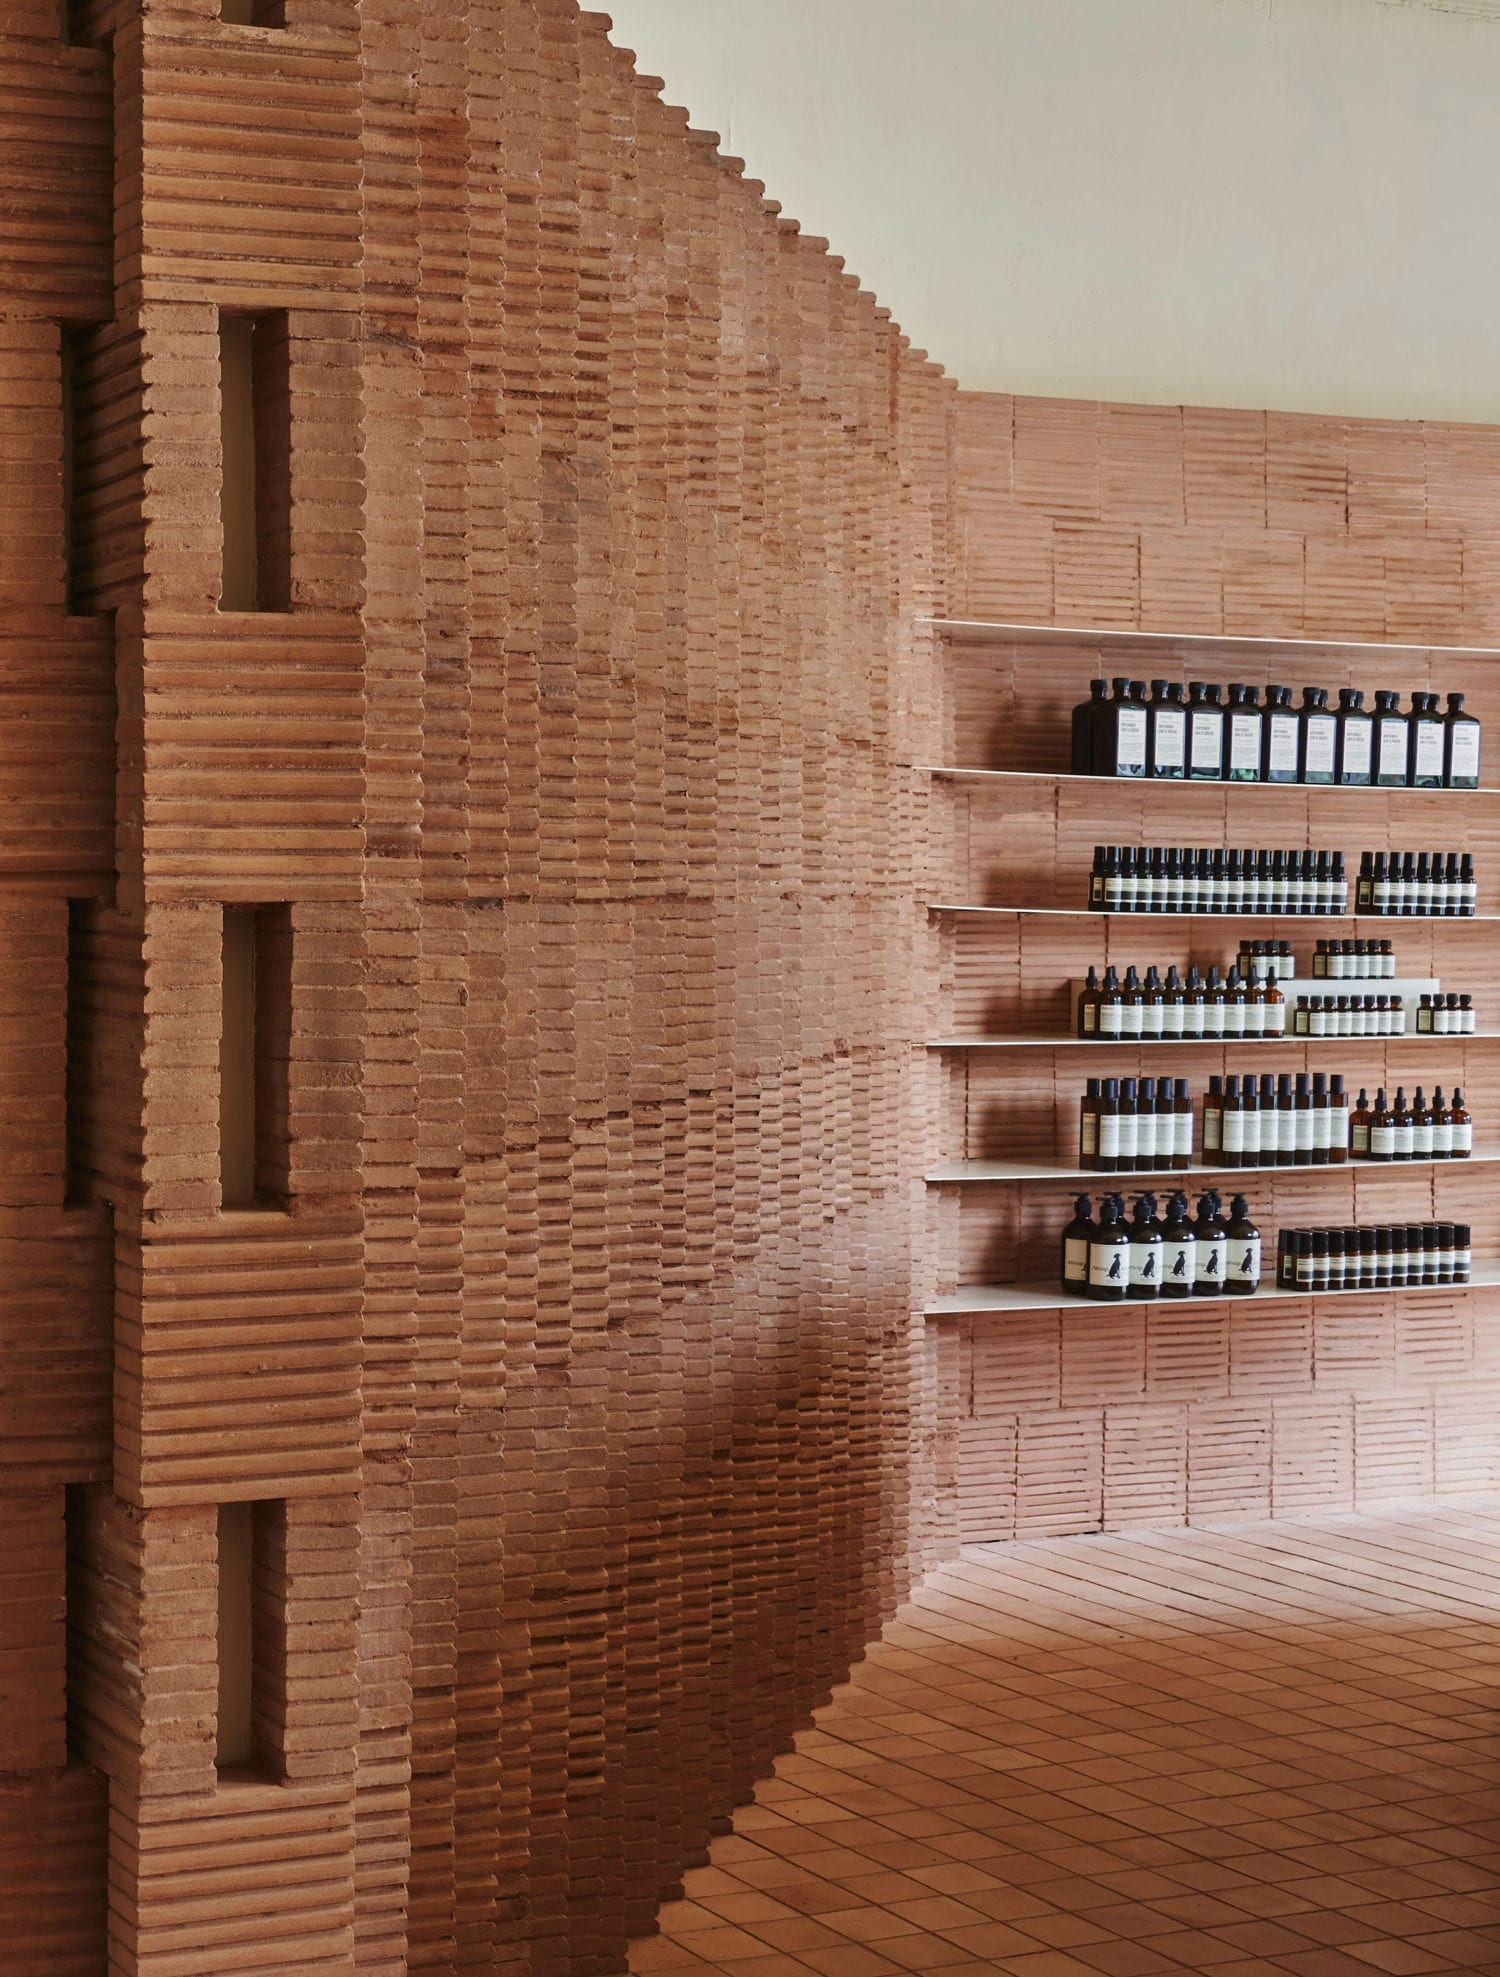 Aesop Store in Park Slope New York by Frida Escobedo | Yellowtrace